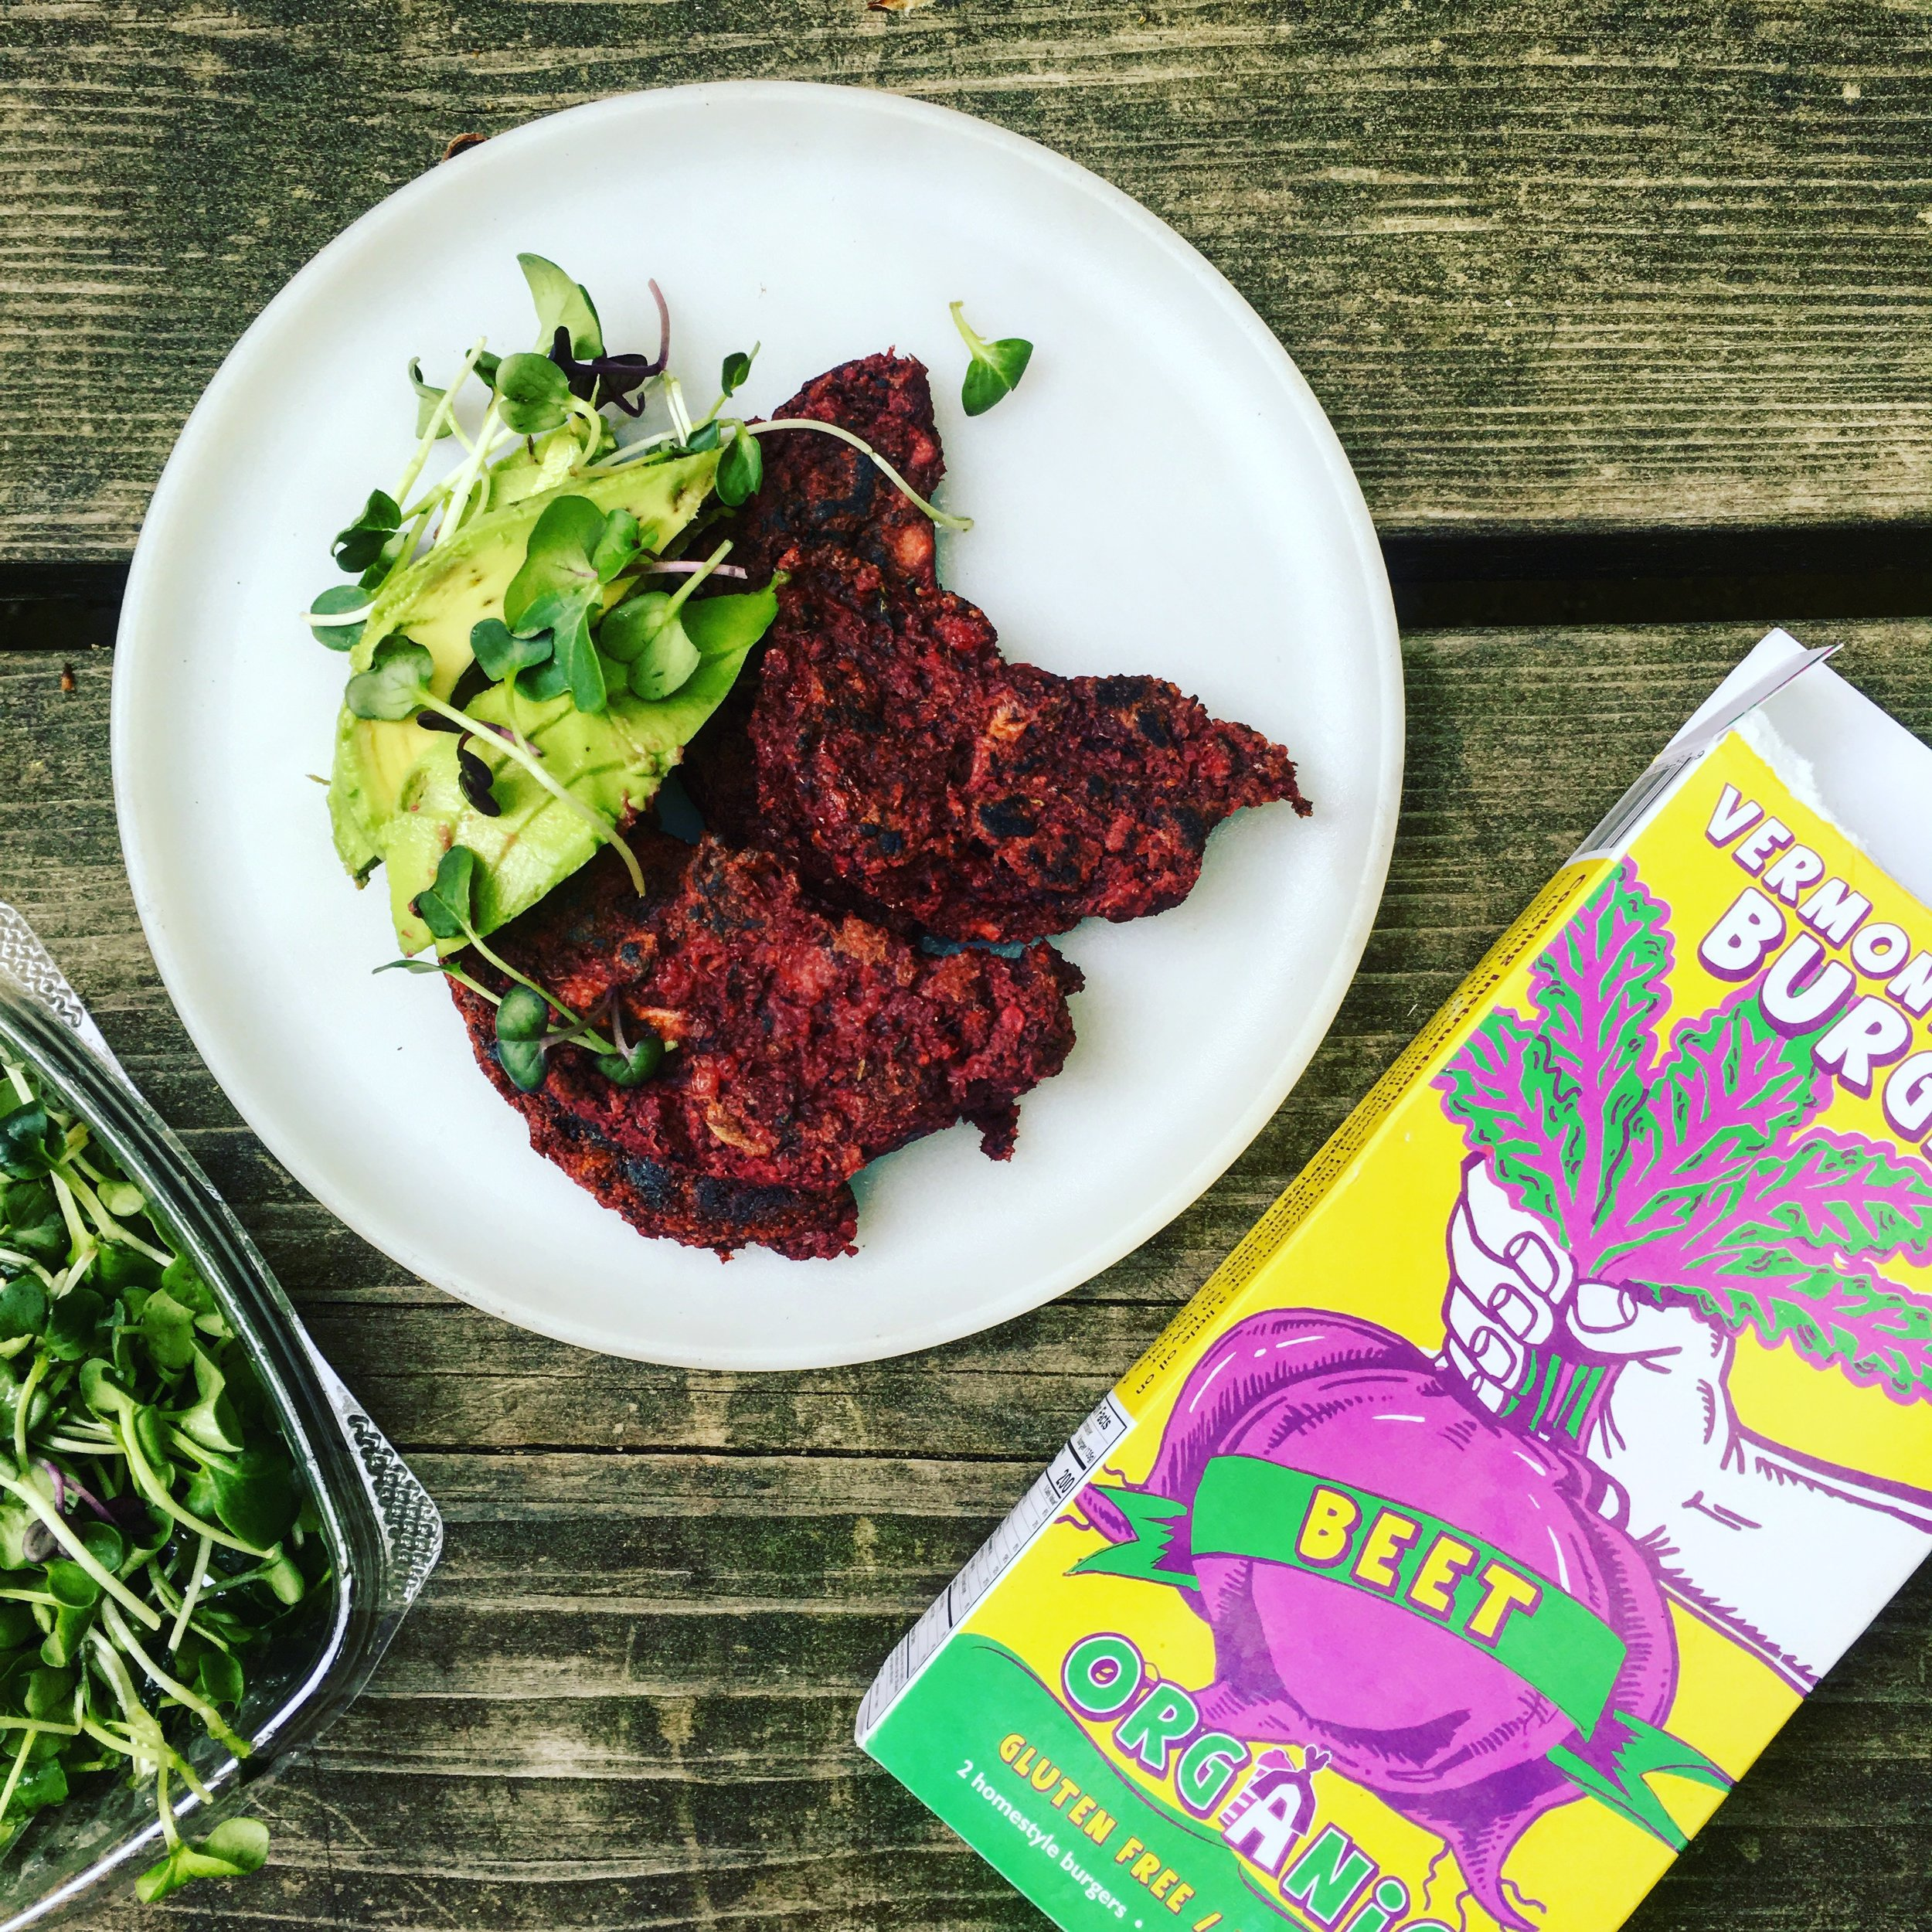 These local beet burgers were so good! I cooked them camp style post ride.